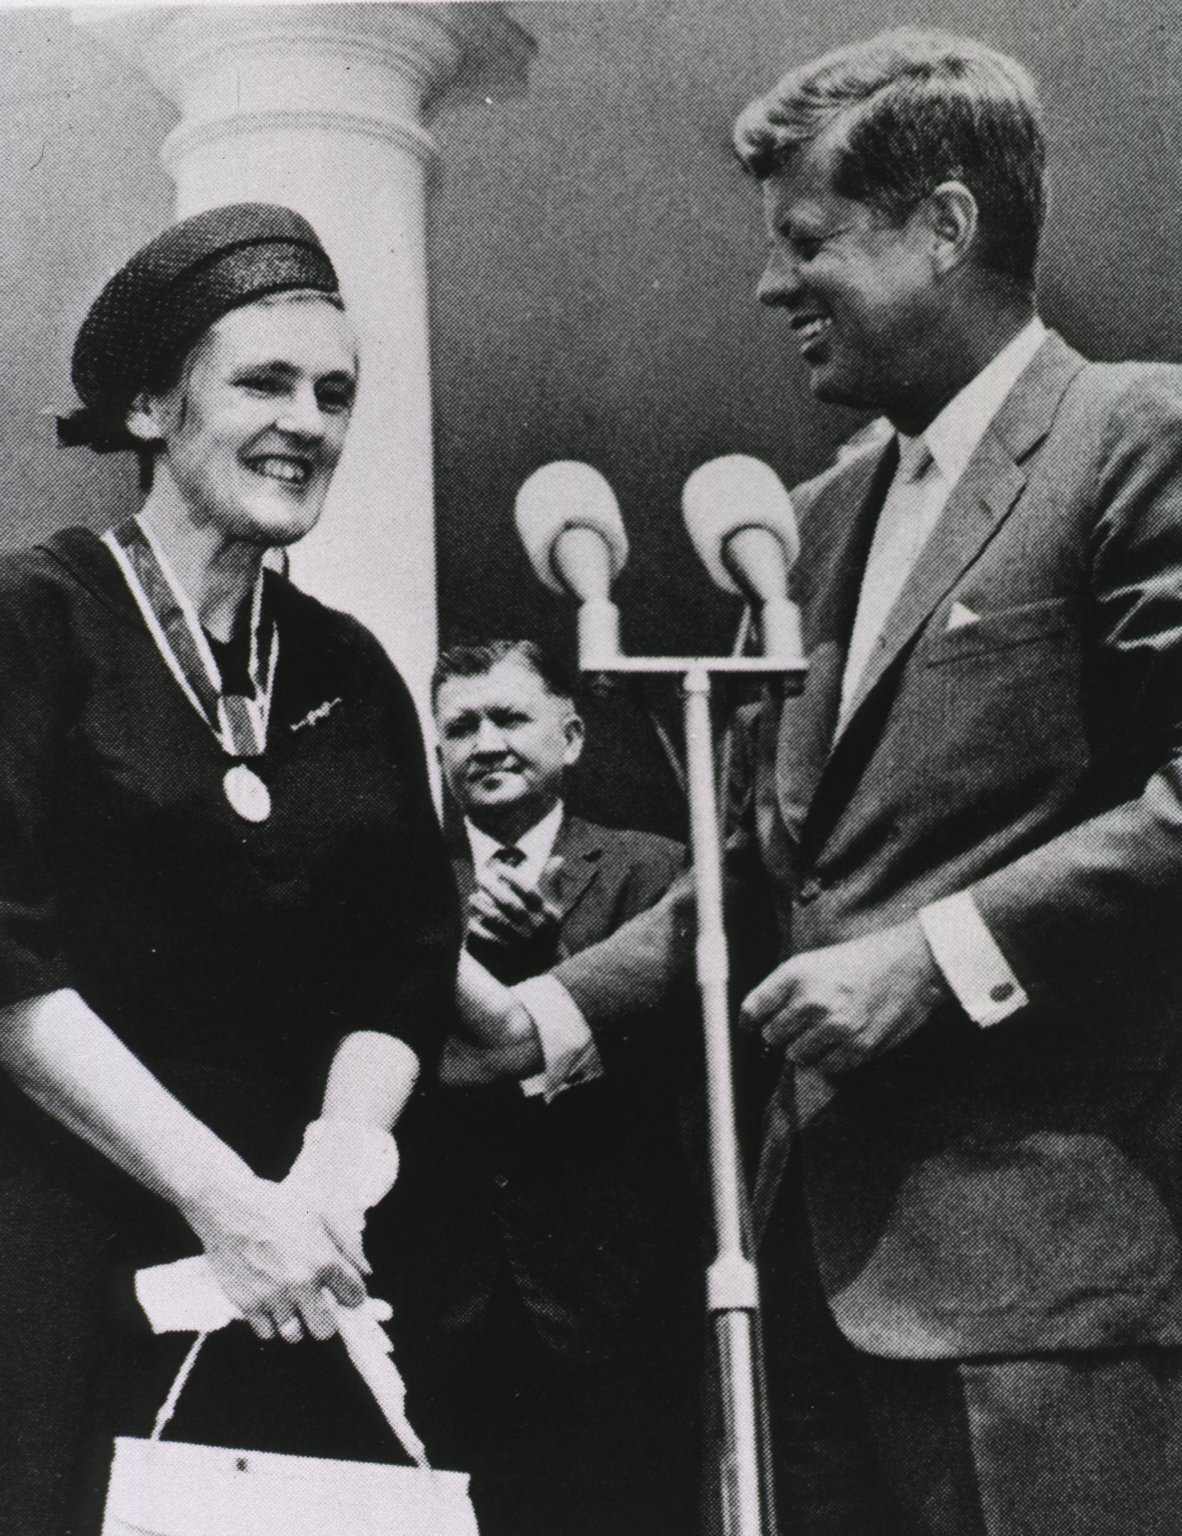 FDA medical officer Frances Kelsey receives the President's Distinguished Federal Civilian Service Award from President John F. Kennedy at a White House ceremony in 1962